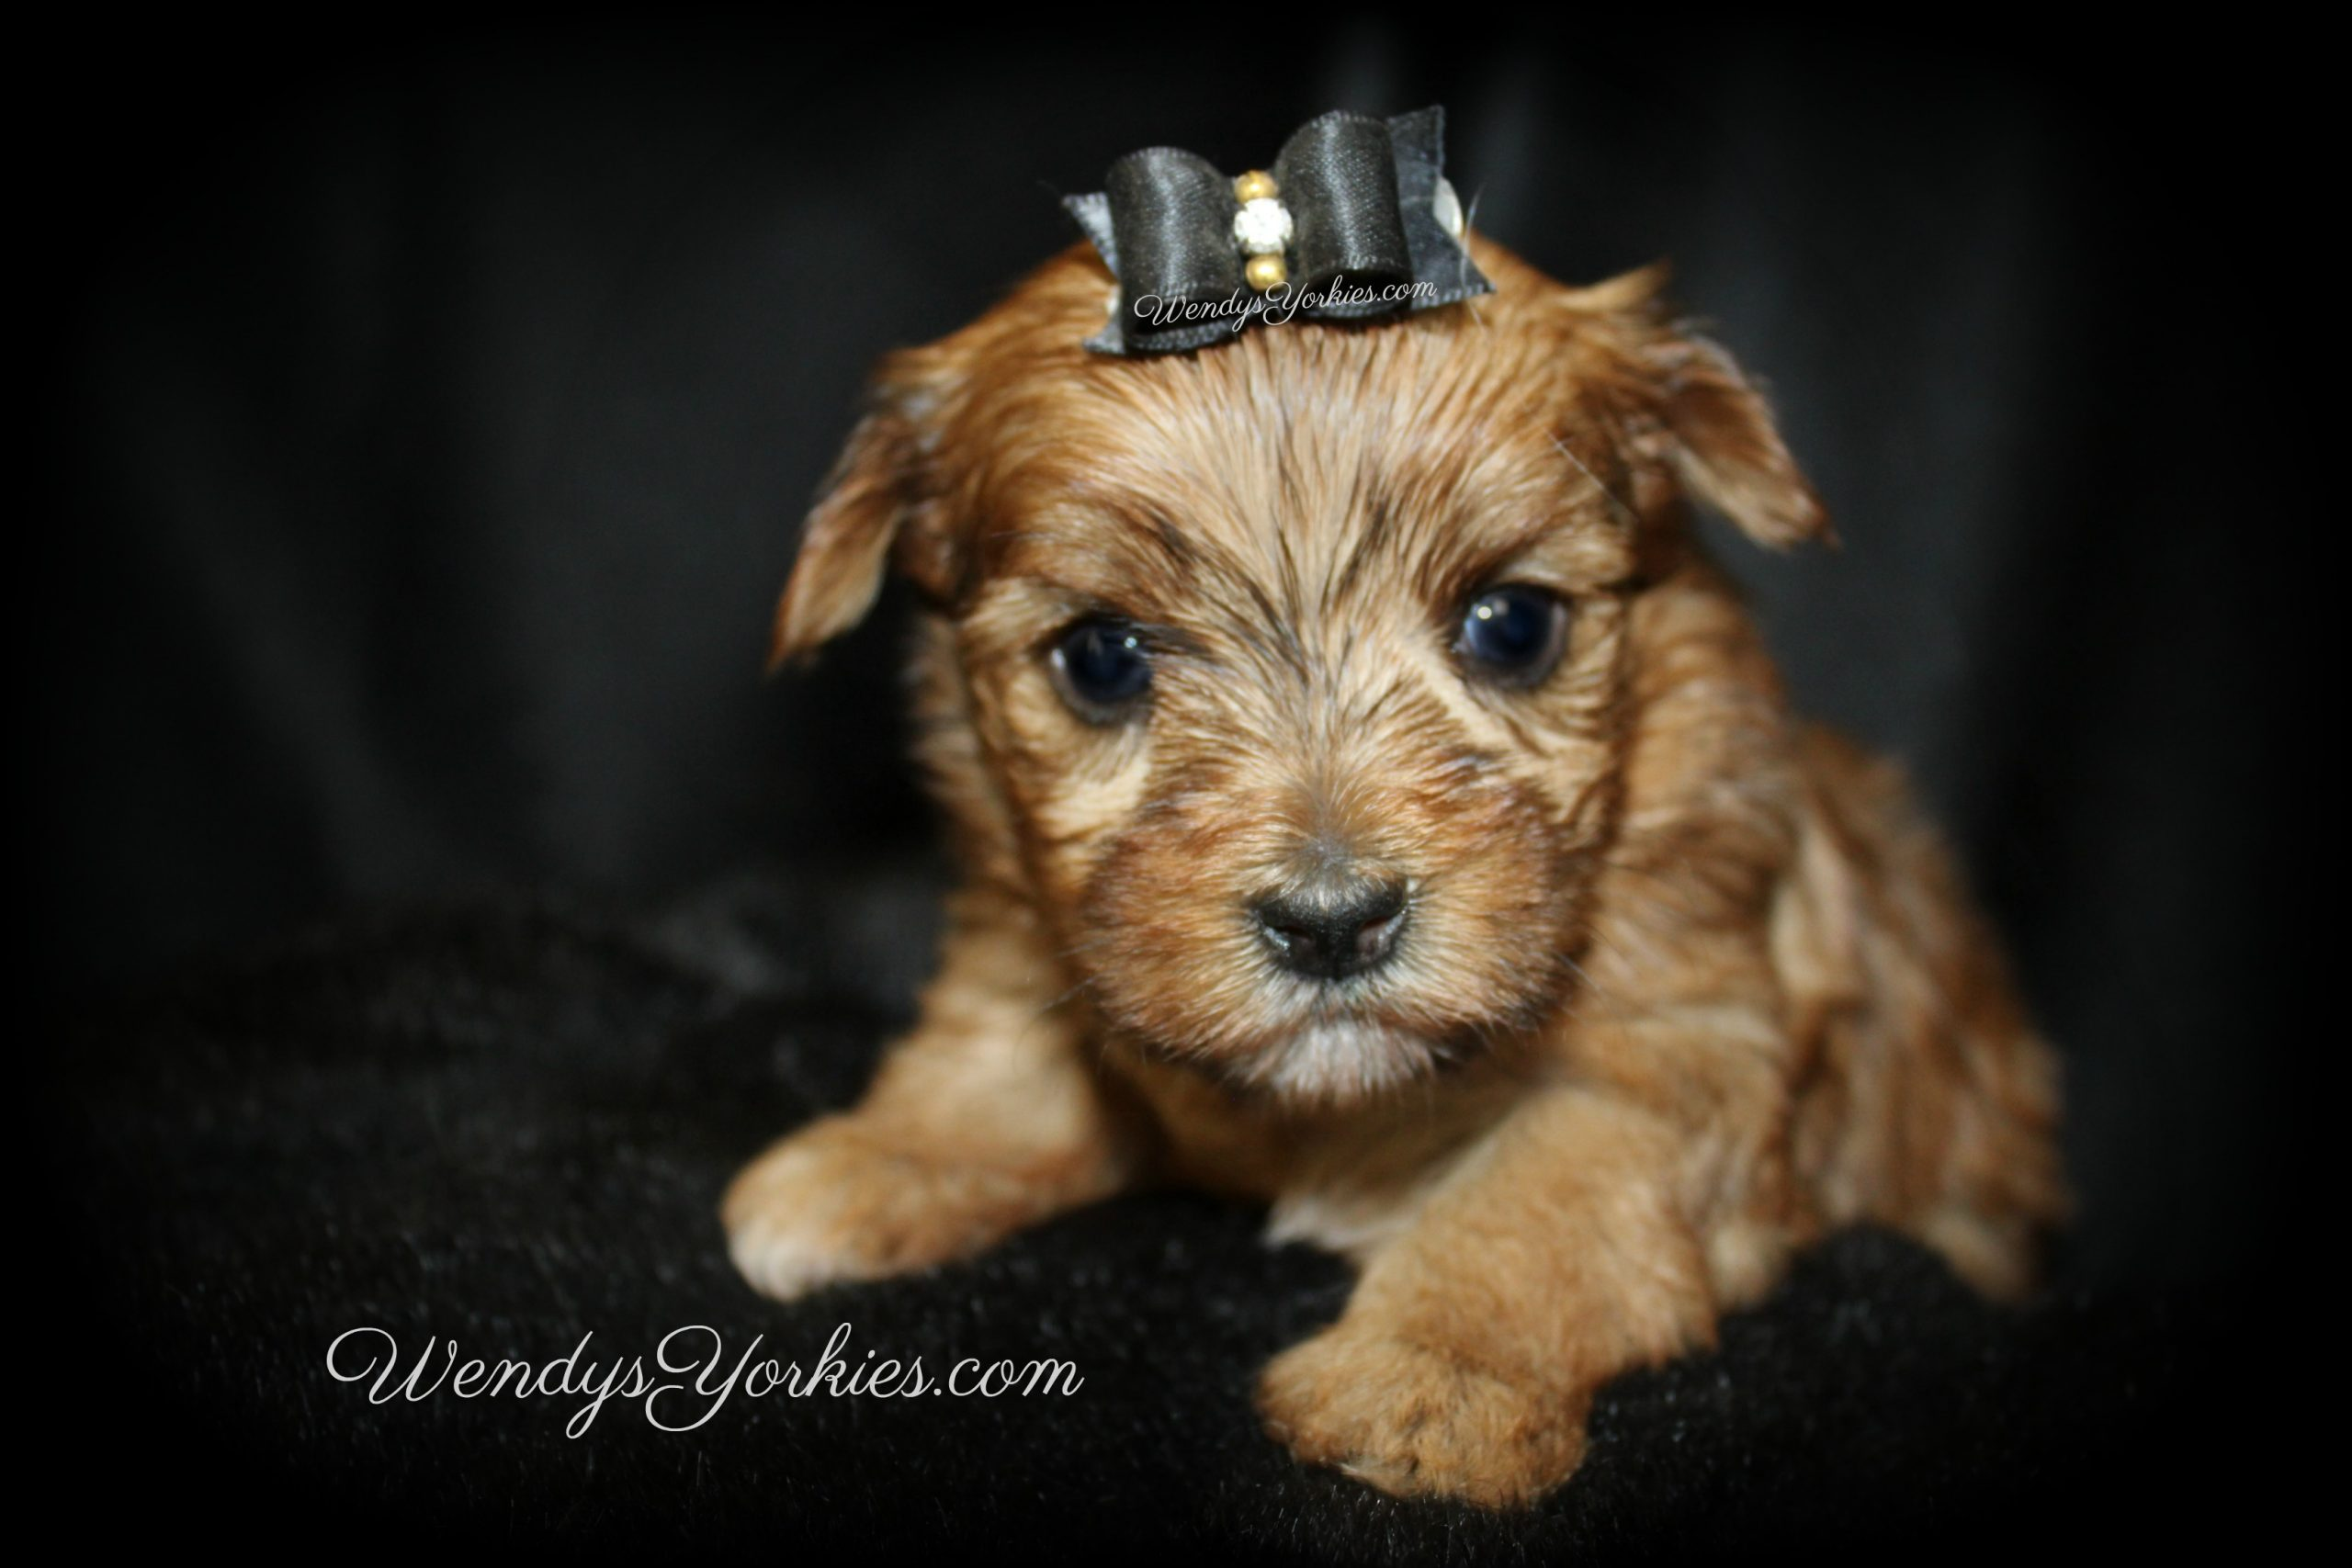 Gold Yorkie puppy for sale, Lela m2, WendysYorkies.com